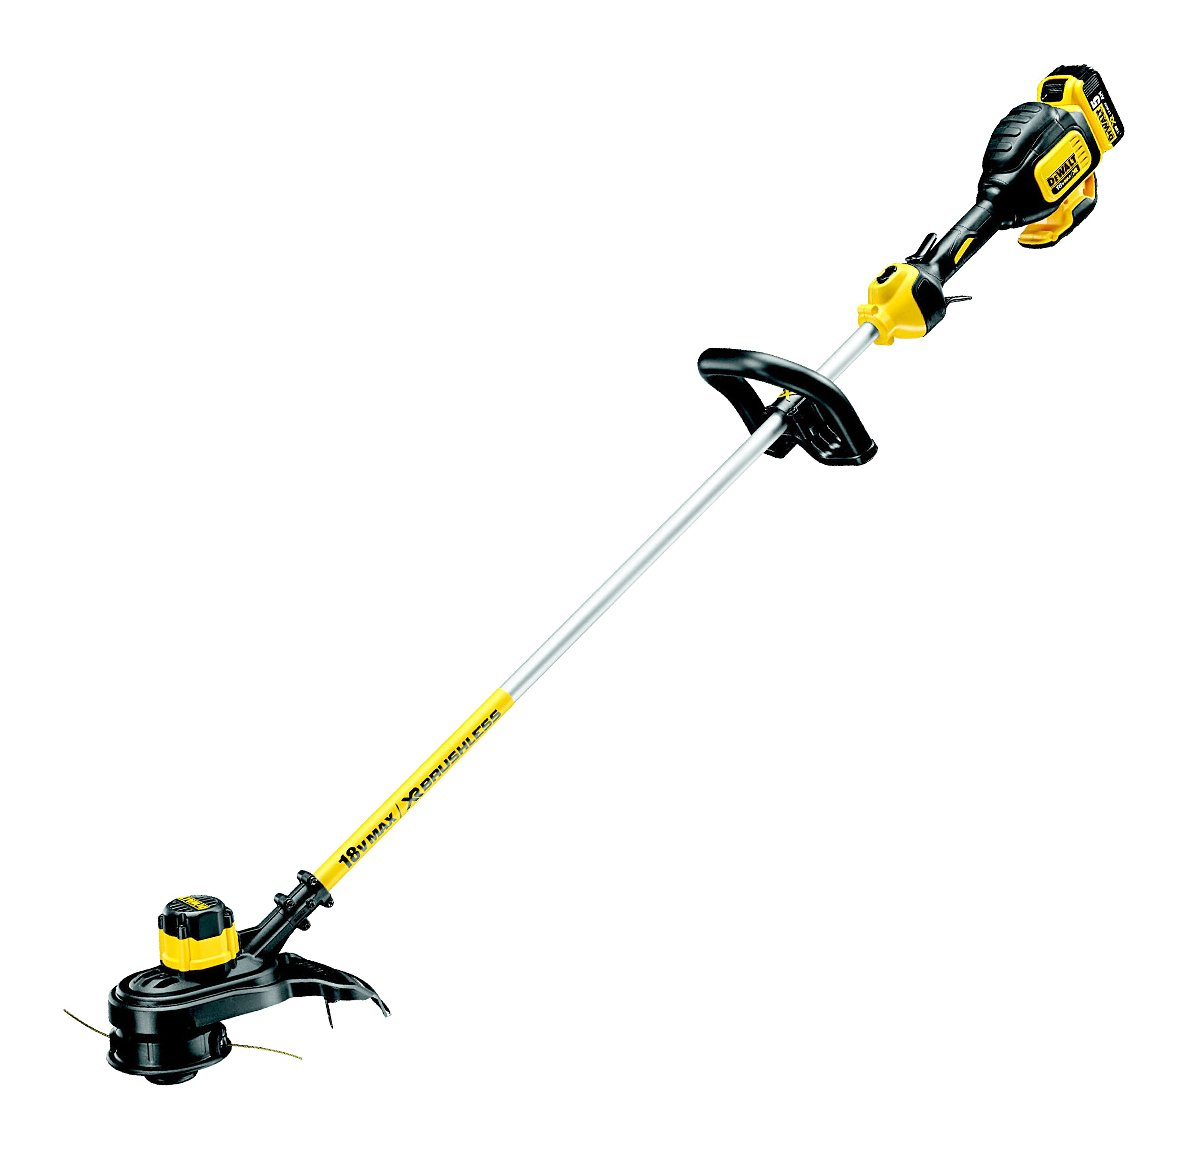 DEWALT DCM561P1-GB 18V Li-Ion XR Cordless Brushless Line Trimmer DCM561P1 -GB